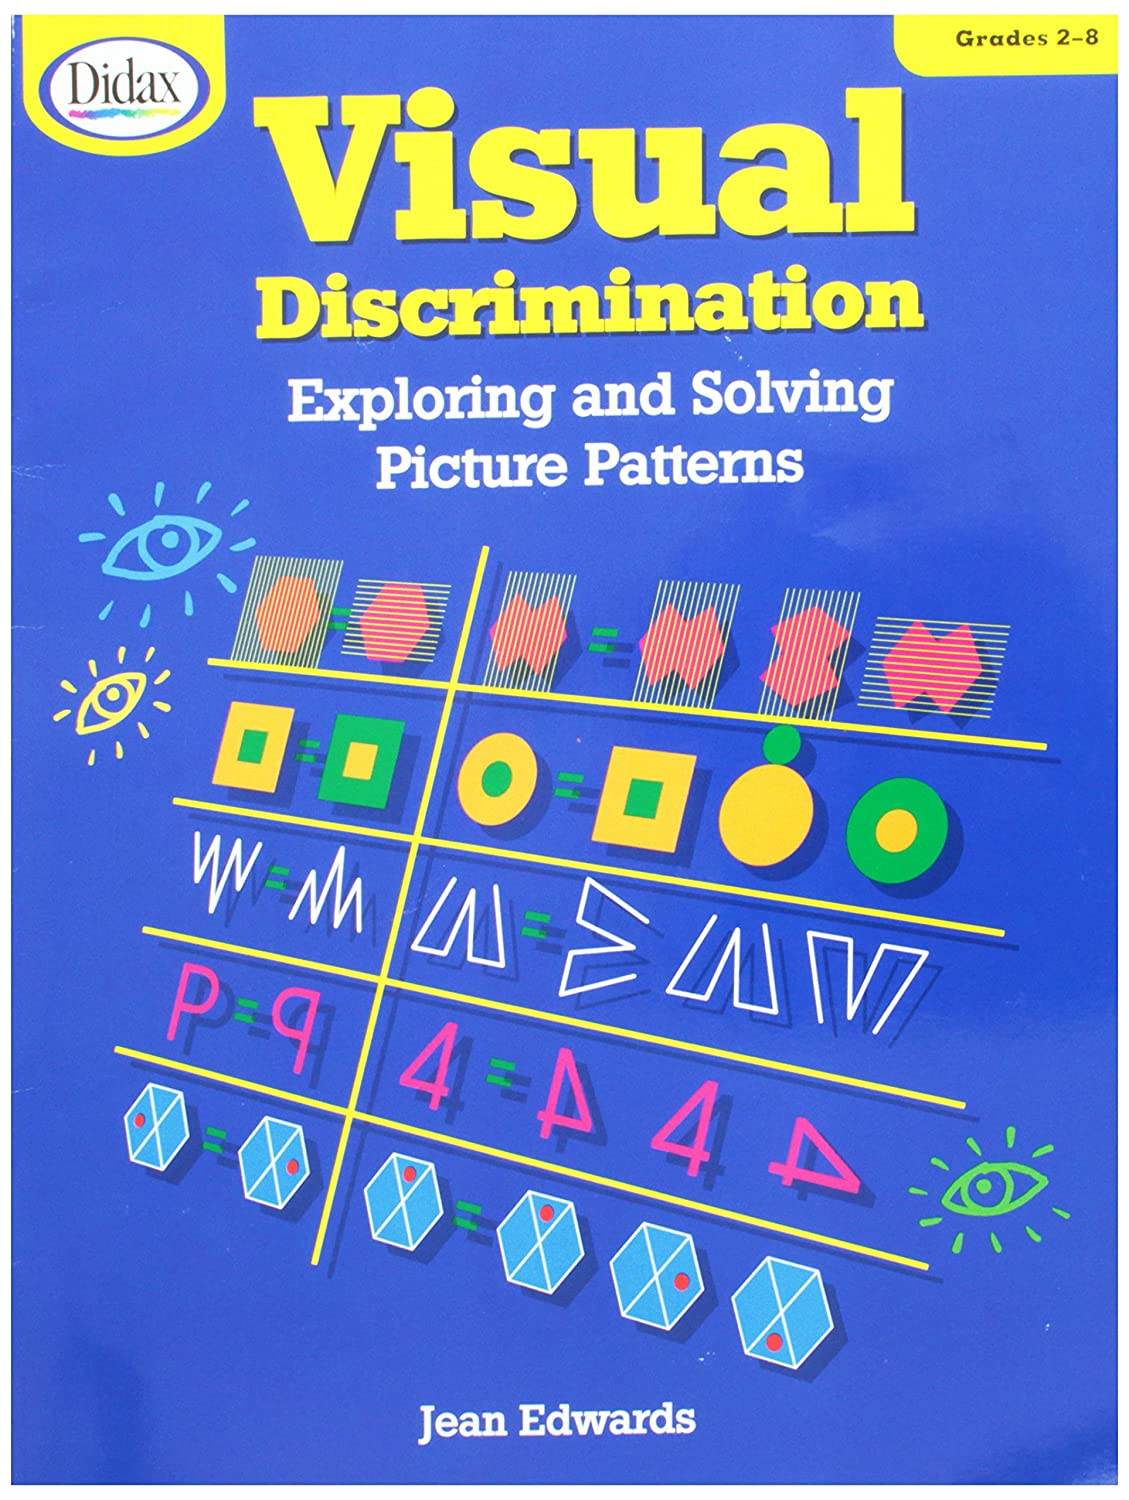 Didax Educational Resources Visual Discrimination Activity